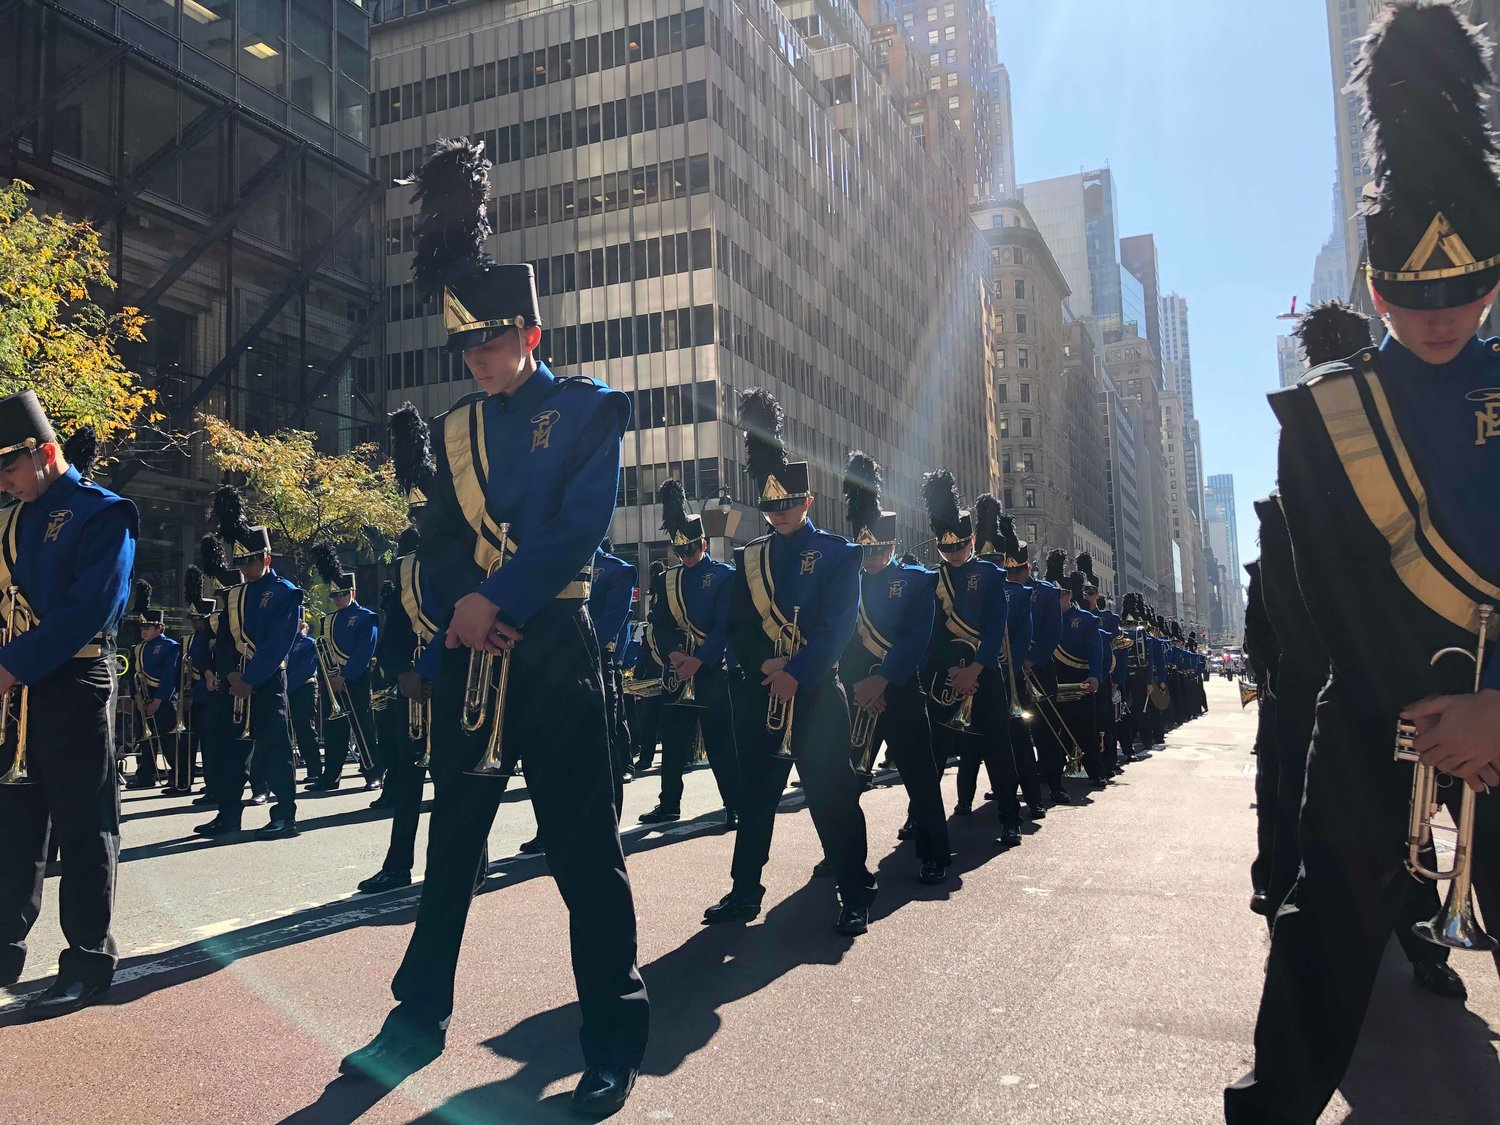 The East Meadow High School marching band finished the 75th New York City Columbus Day Parade in first place — for the 15th time since they began competing in 1992.